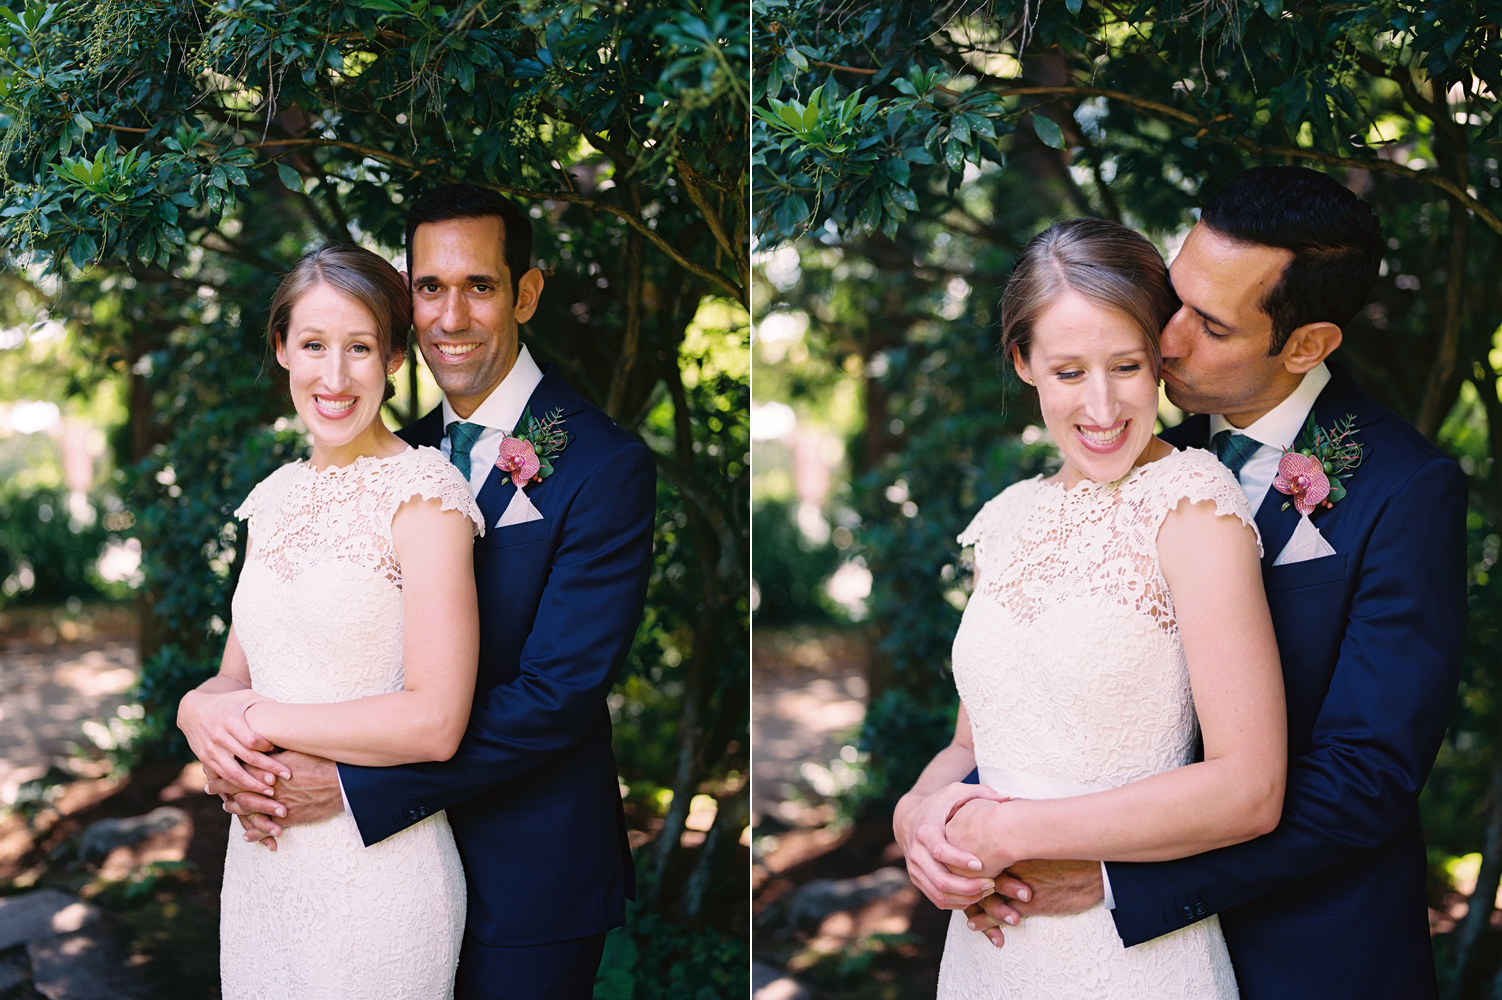 Seattle Parsons Garden Bride and Groom Portrait Photography.jpg